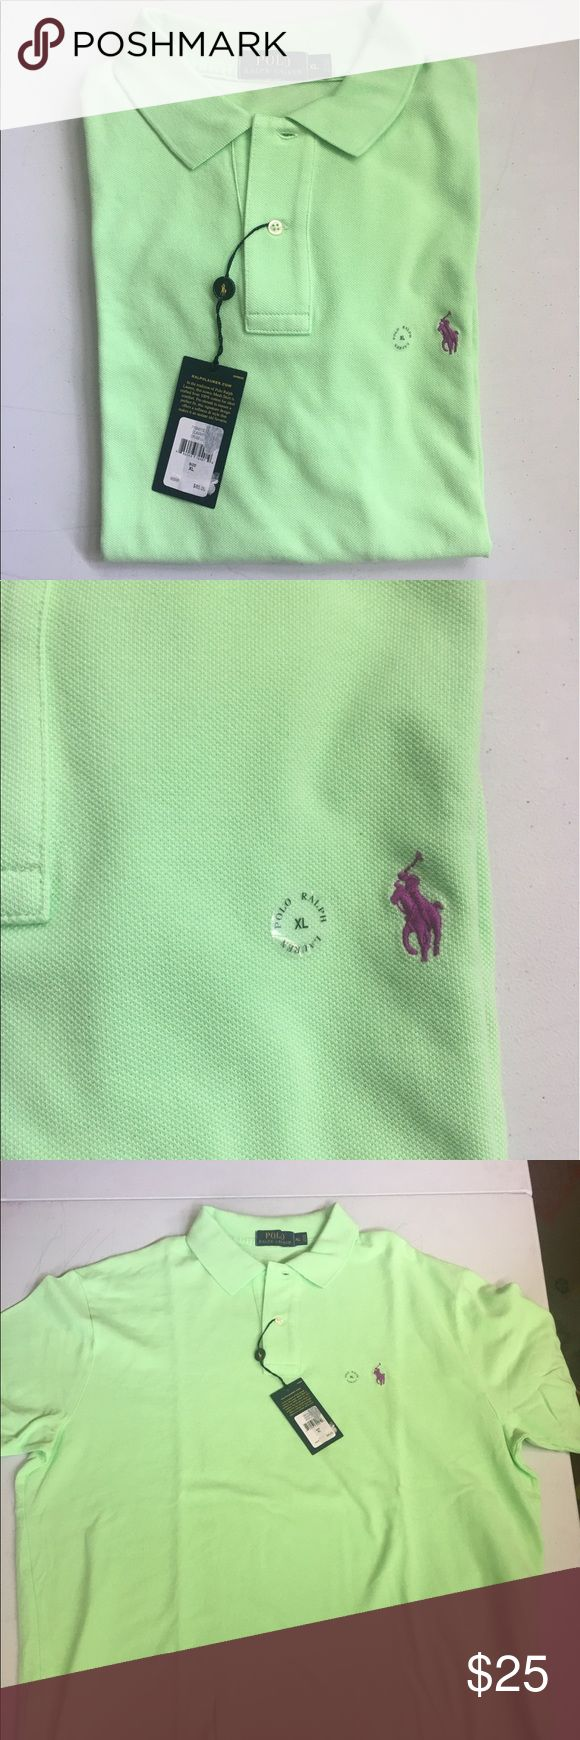 Polo Ralph Lauren Classic Fit Mesh Polo Shirt Rubbed Polo collar, applied 2-button placed, short sleeves with ribbed armbands. Collar & armbands are constructed to retain their fit even after multiple washes. I even vented hems. 100% Cotton. Originally $85. FIRM ON PRICE. Color is called Cruse Lime. Color may be different than picture due to lighting, monitor, or personal opinion. Polo by Ralph Lauren Shirts Polos